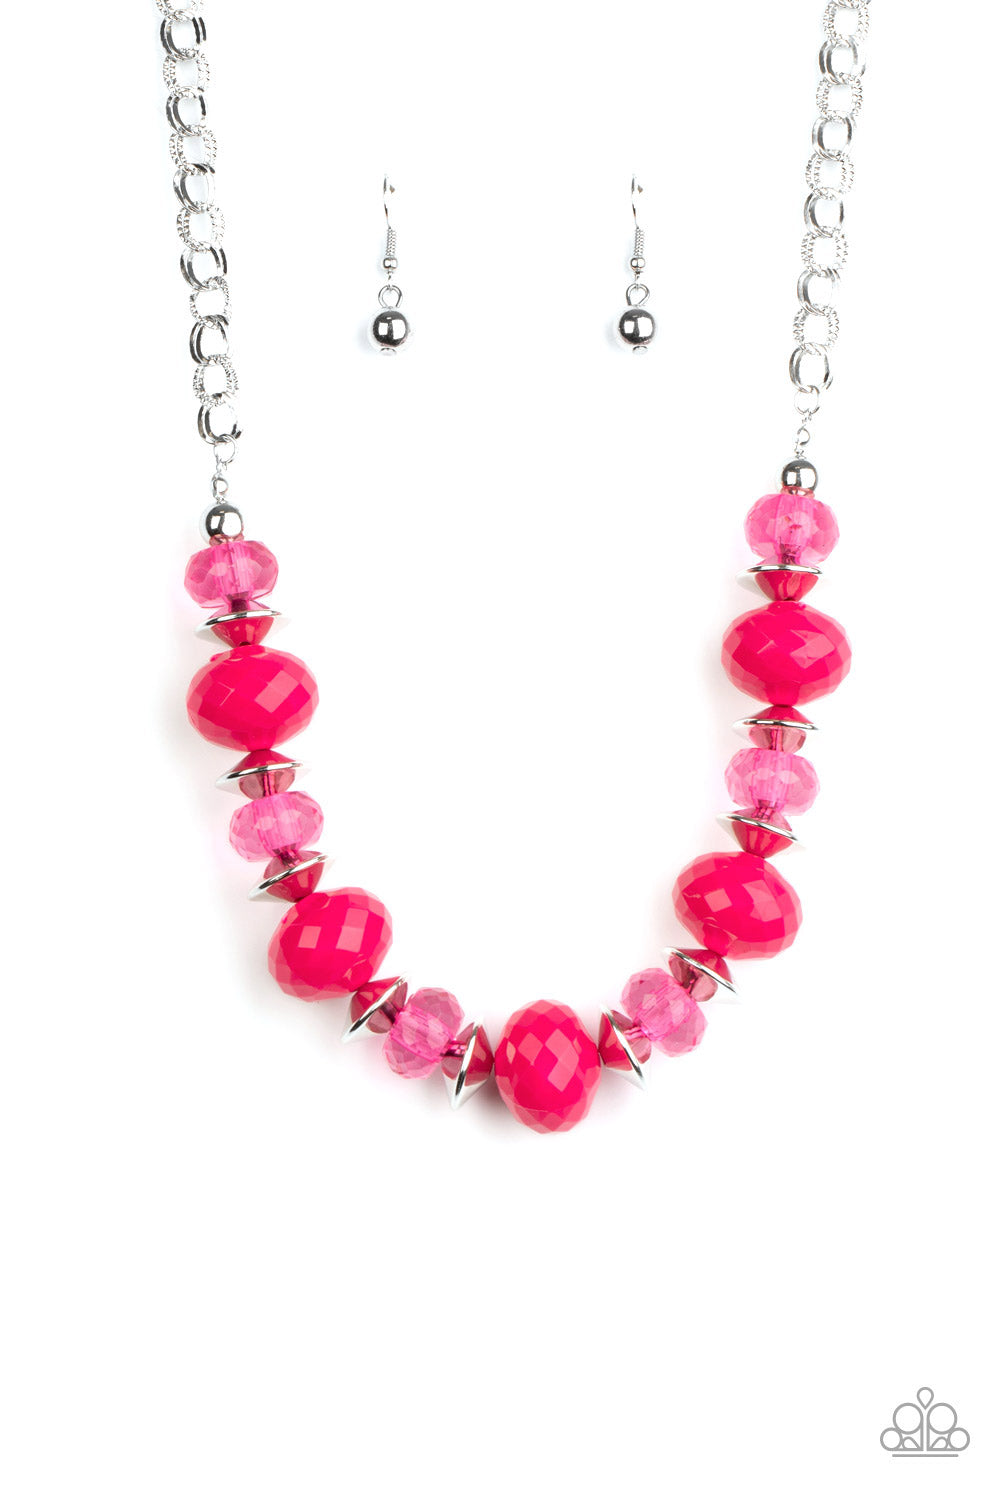 Paparazzi Necklace ~ Hollywood Gossip - Pink